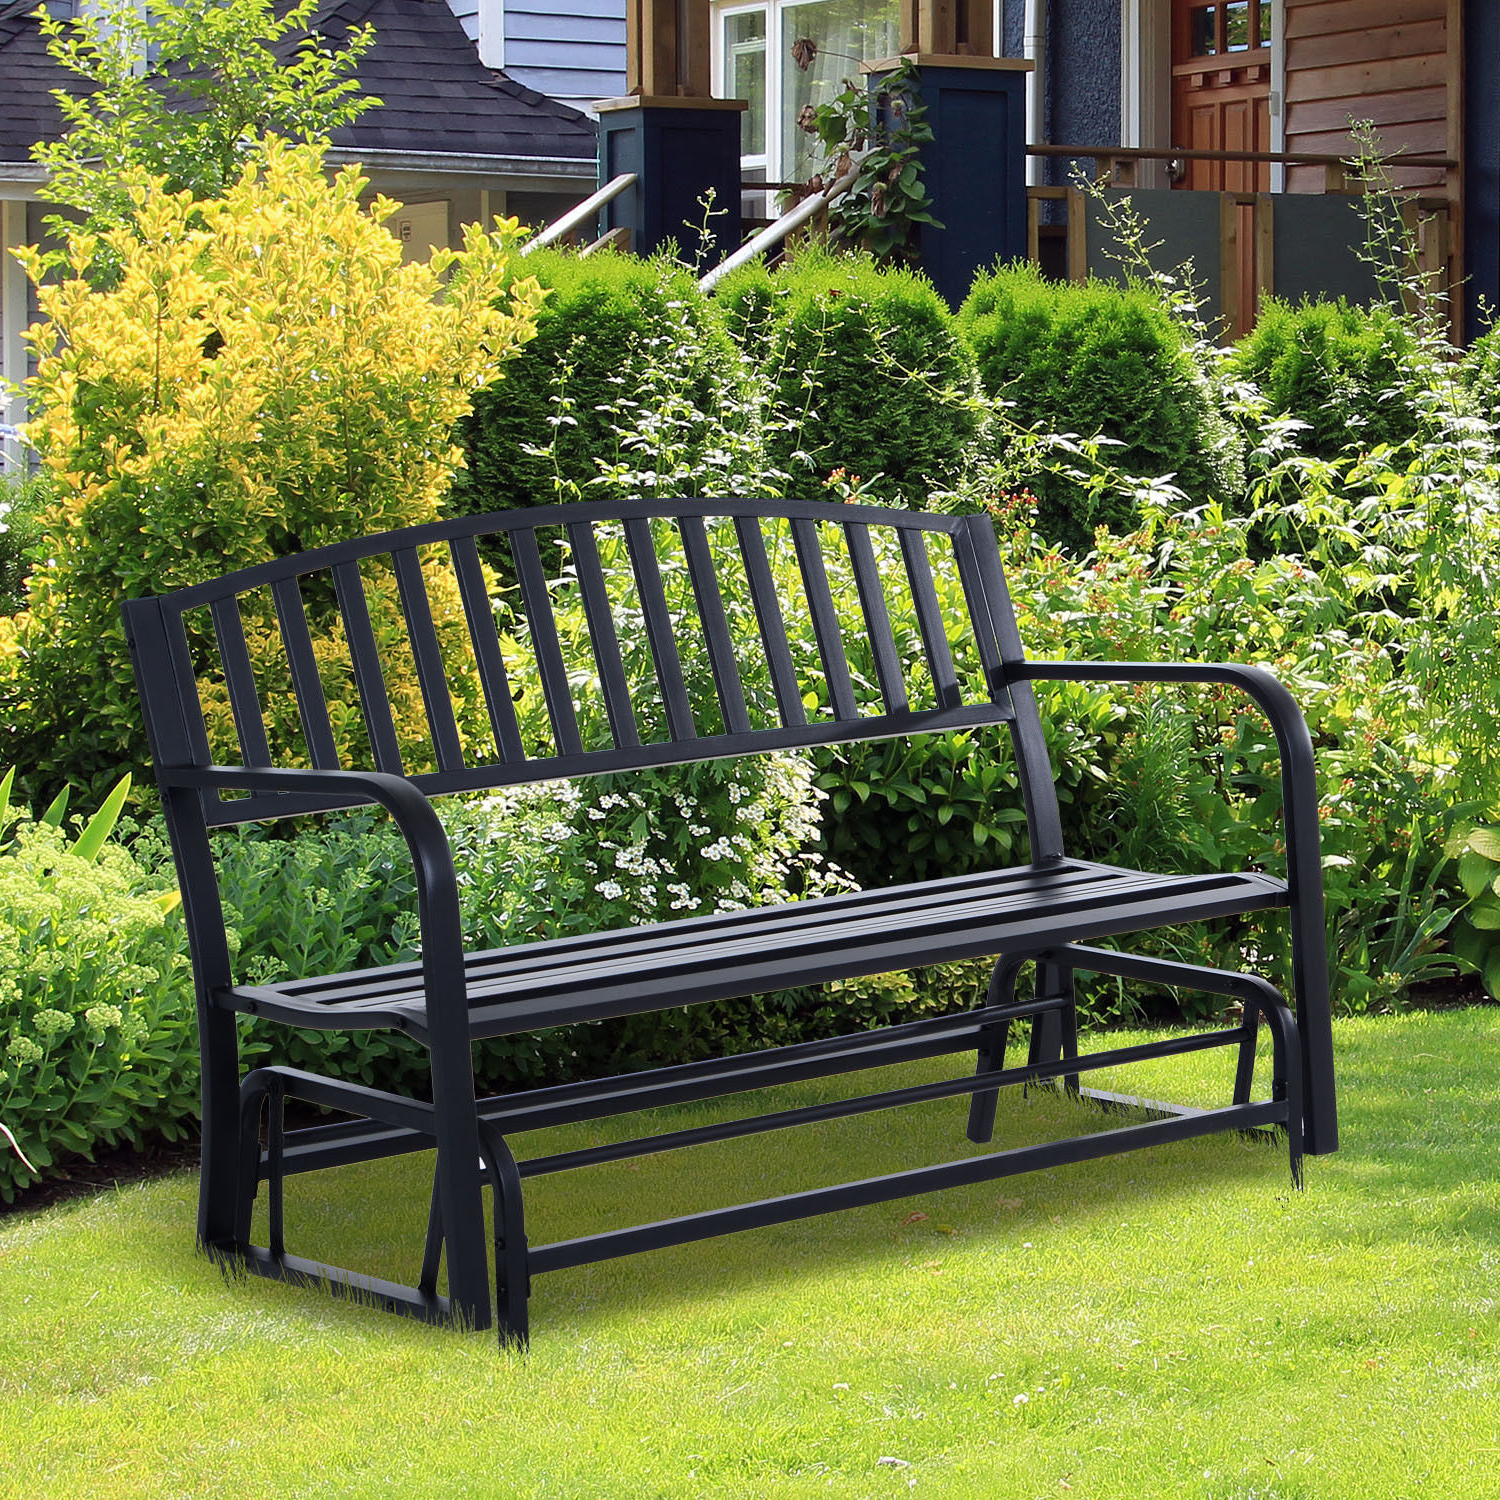 Most Recently Released Details About Patio Garden Glider 2 Person Outdoor Porch Bench Rocking Chair Yard Furniture Pertaining To 2 Person Antique Black Iron Outdoor Gliders (View 13 of 30)